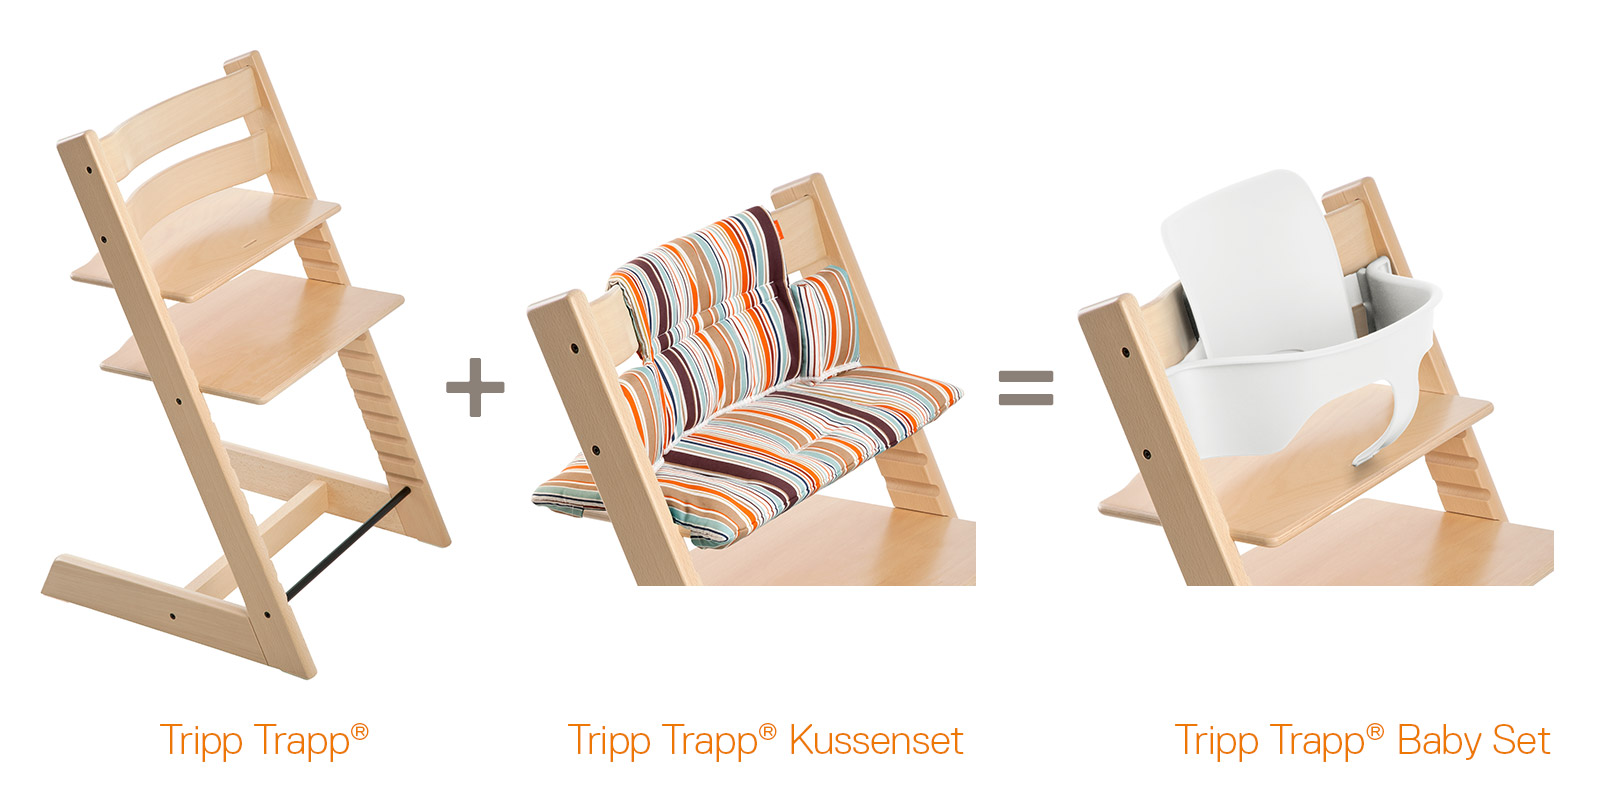 Kinderwagen Set Outlet Tripp Trapp Baby Set Promotion Sept 2014